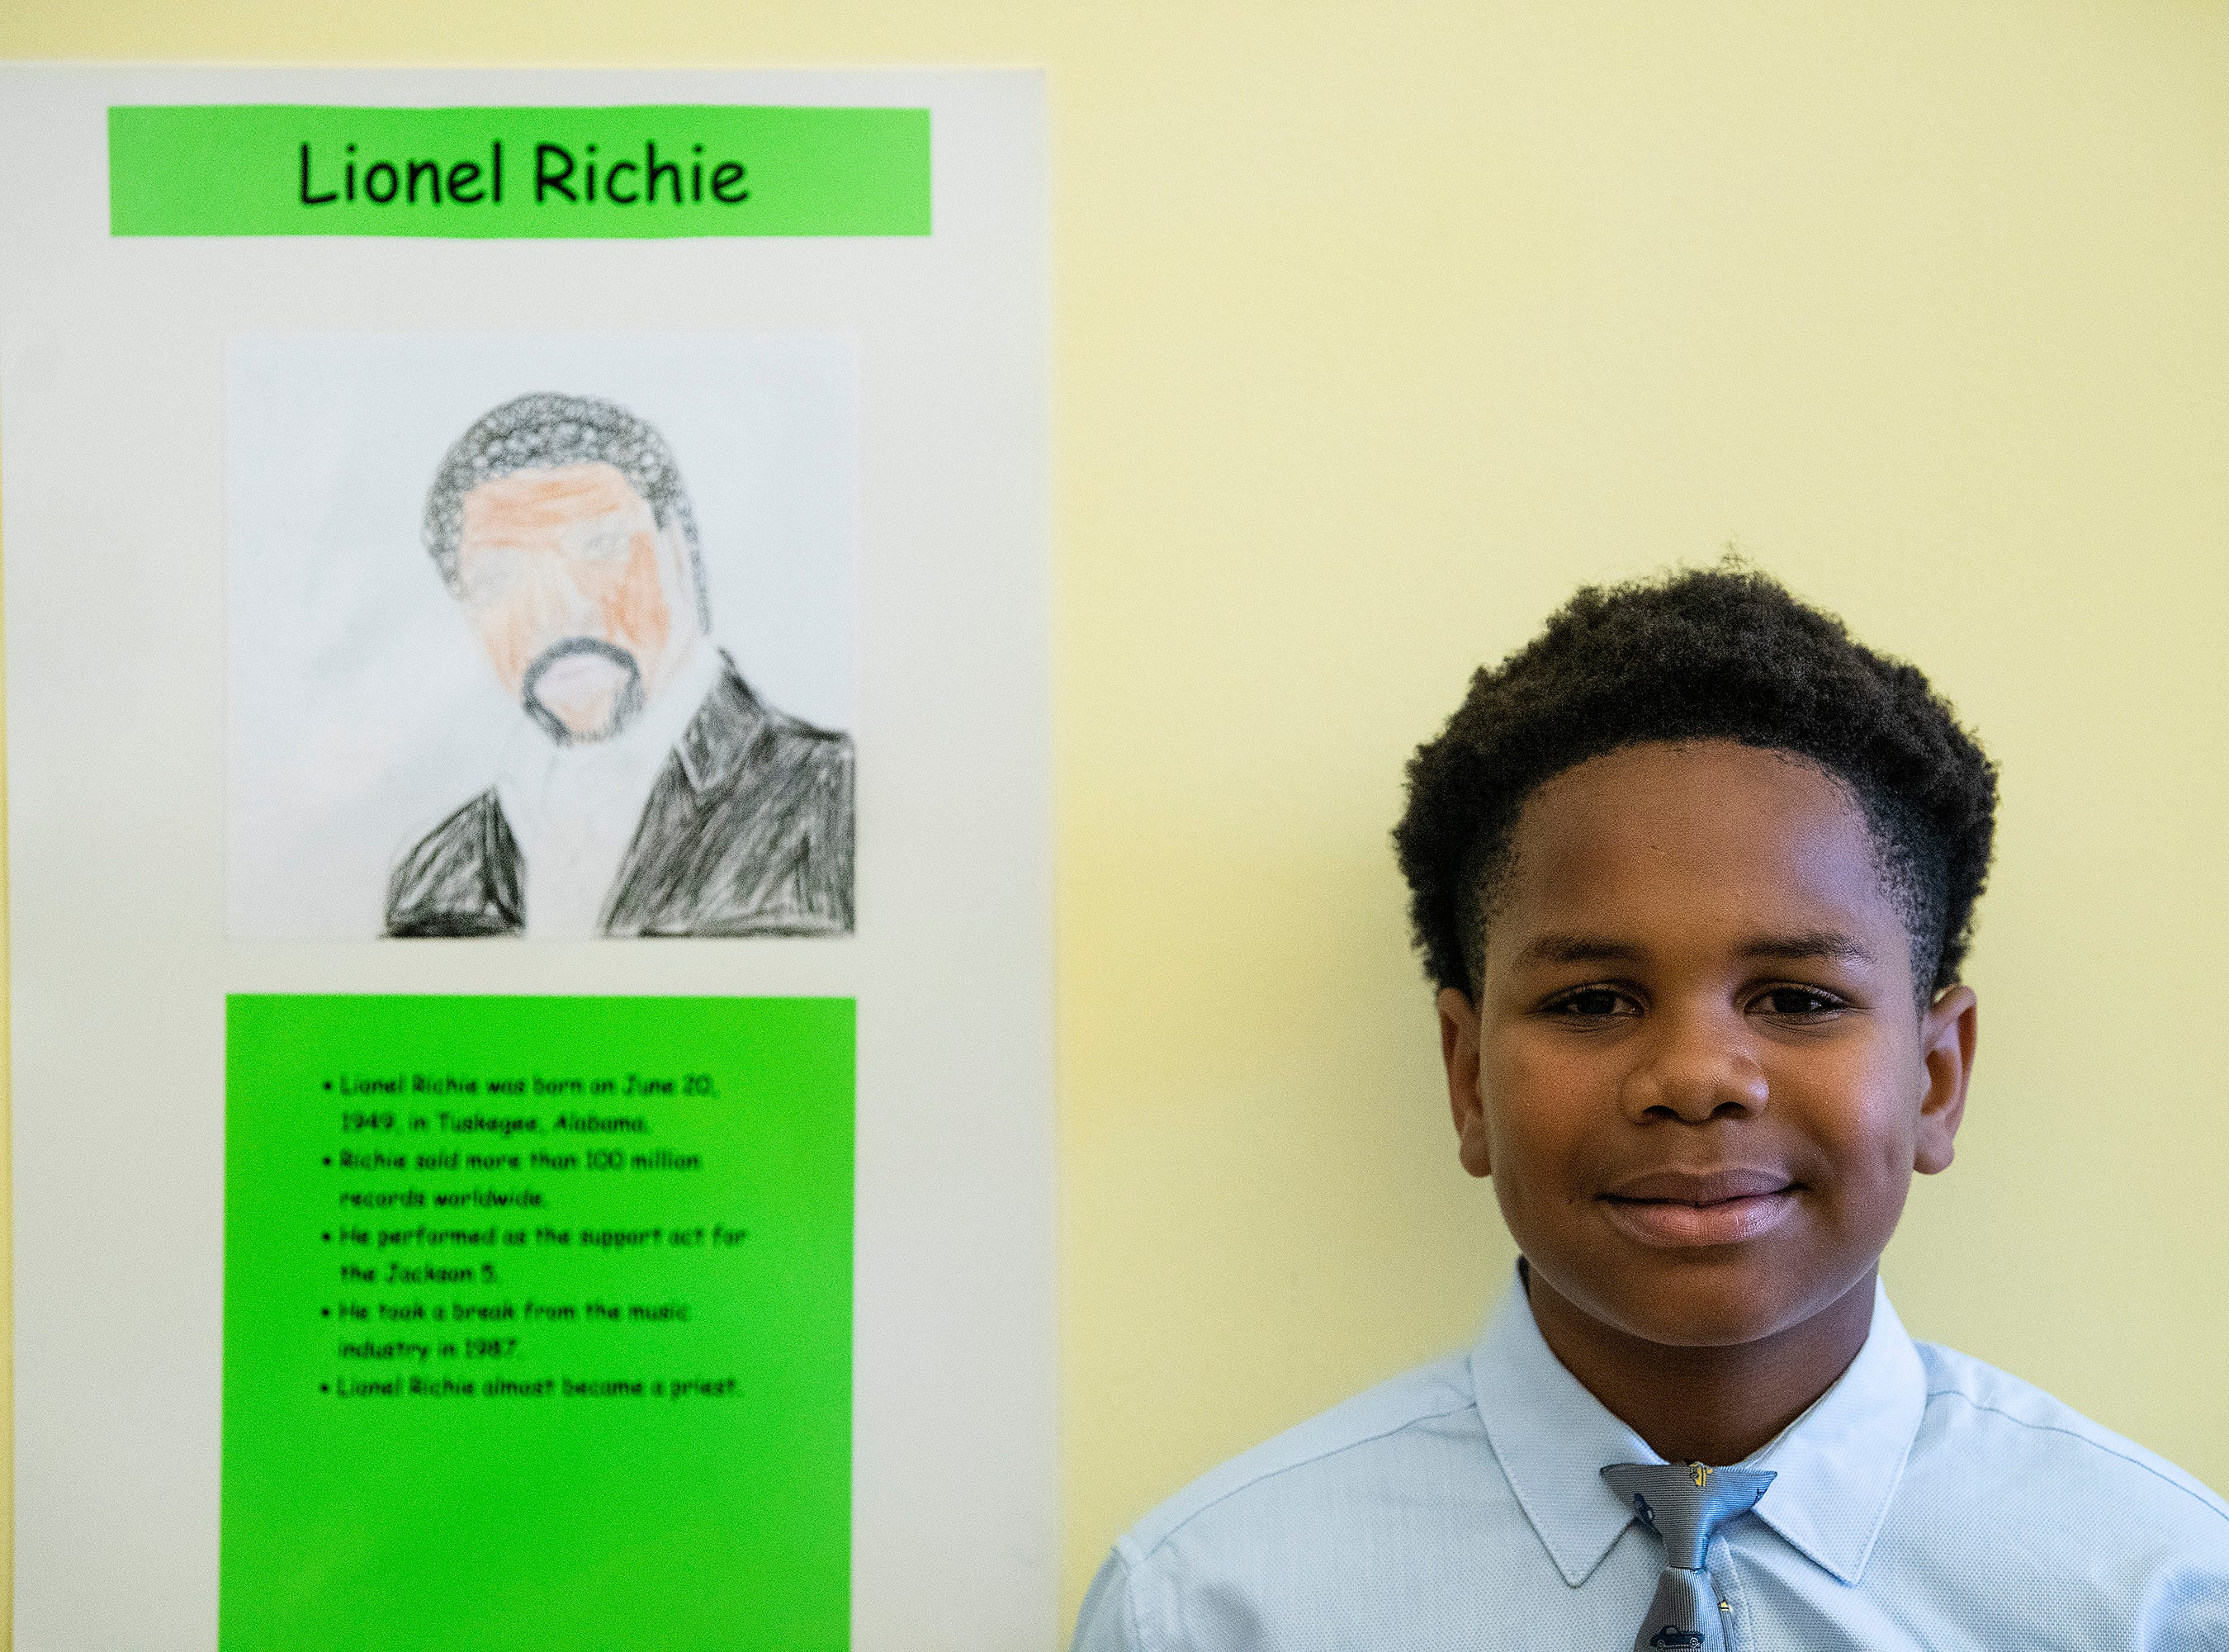 Broderick Williams plays Lionel Ritchie as students portray Alabamians in their Alabama Bicentennial Wax Museum, telling the stories of their characters to visitors, at Holy Cross Episcopal School in Montgomery, Ala., on Friday February 15, 2019.